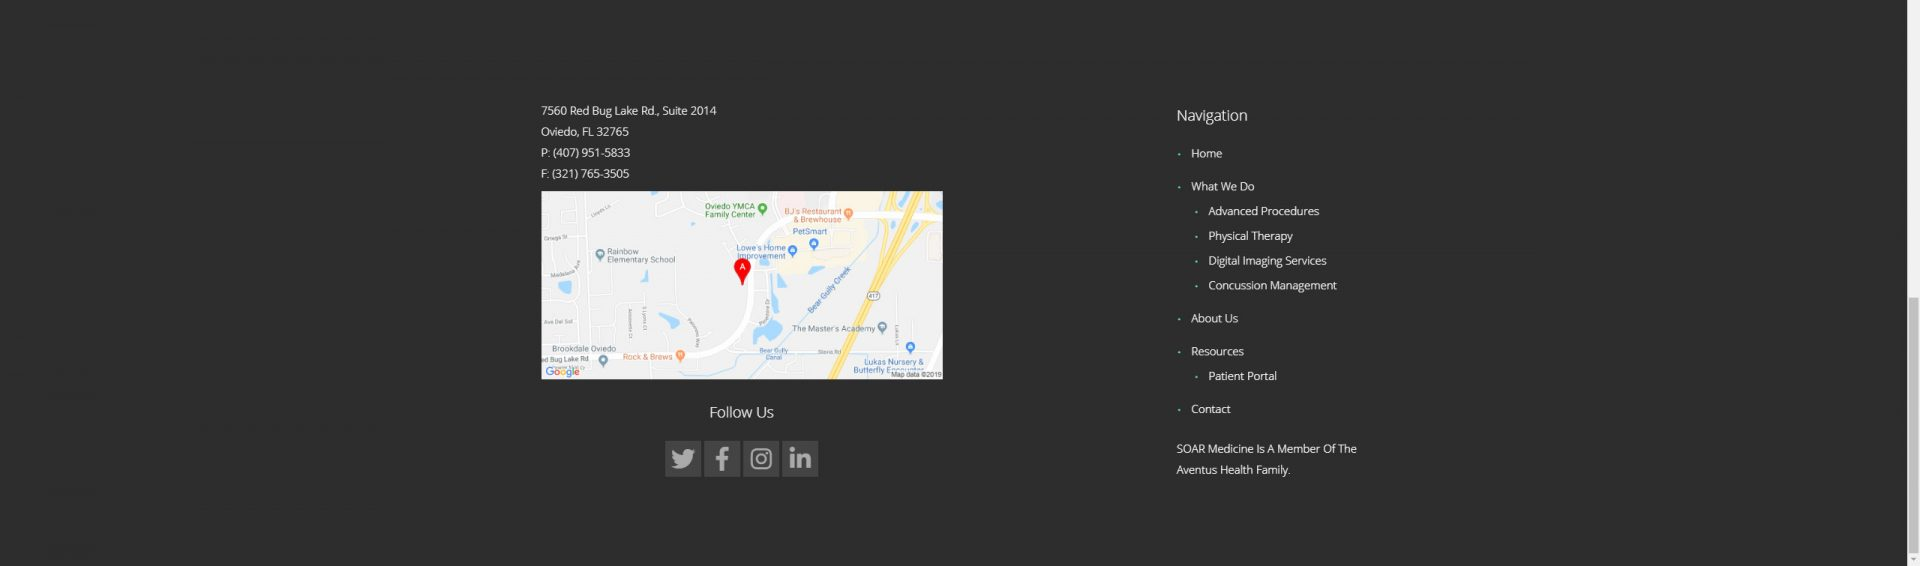 Website design footer about us page